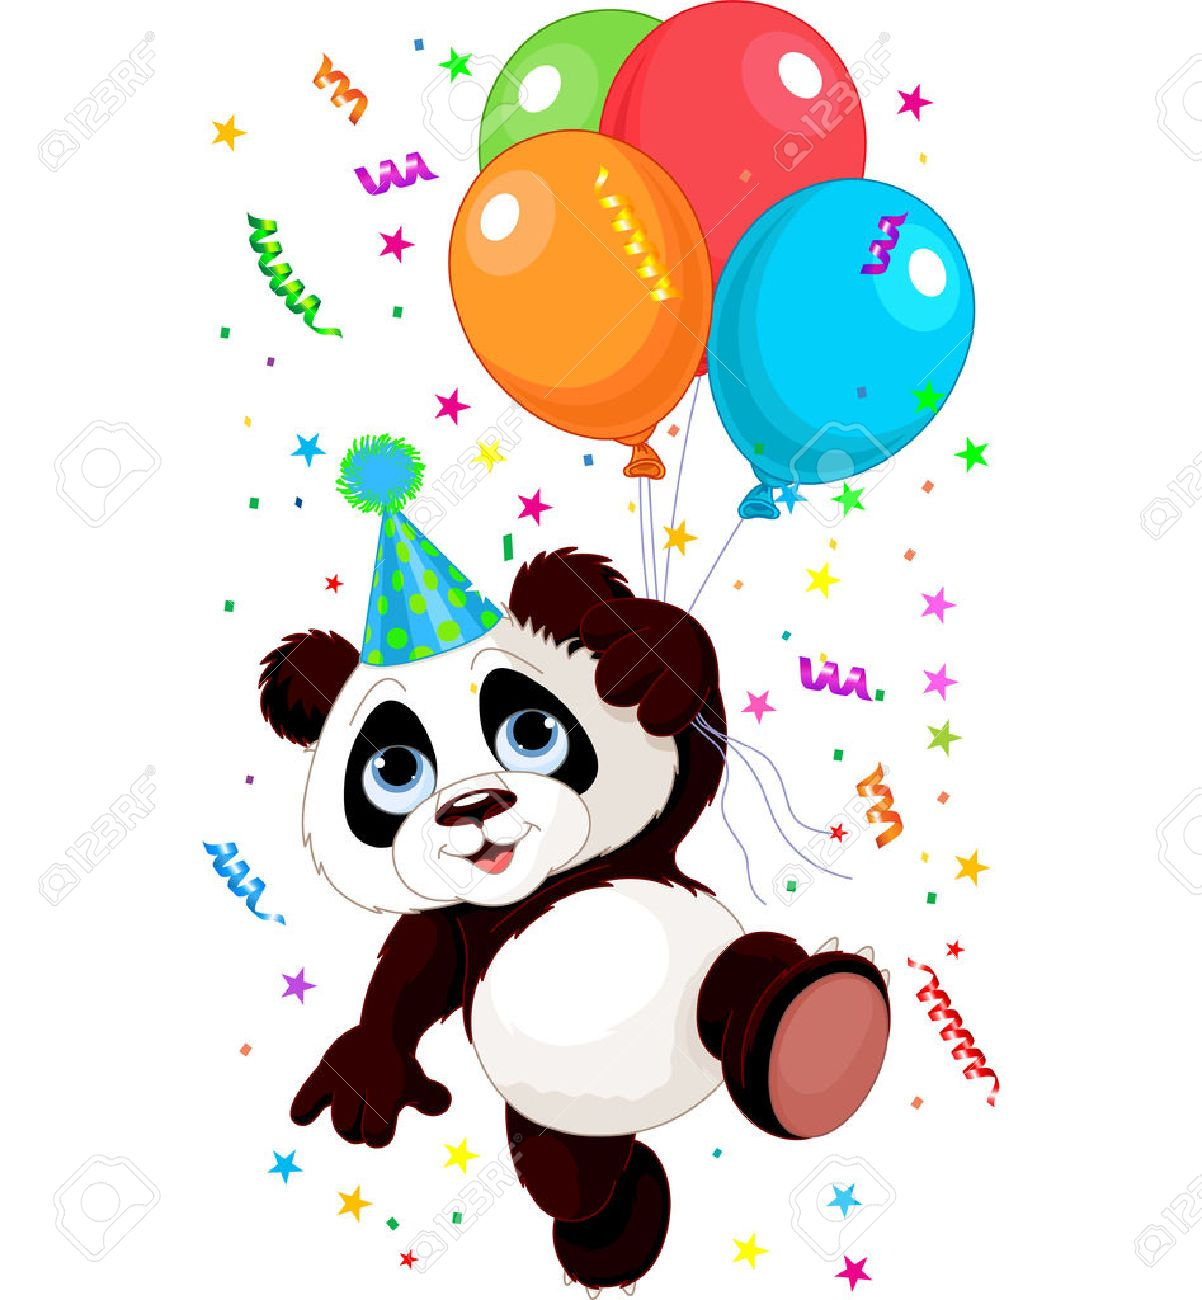 happy birthday panda clipart ; bc0d0ecac6262d6d67e2c94be2f25398